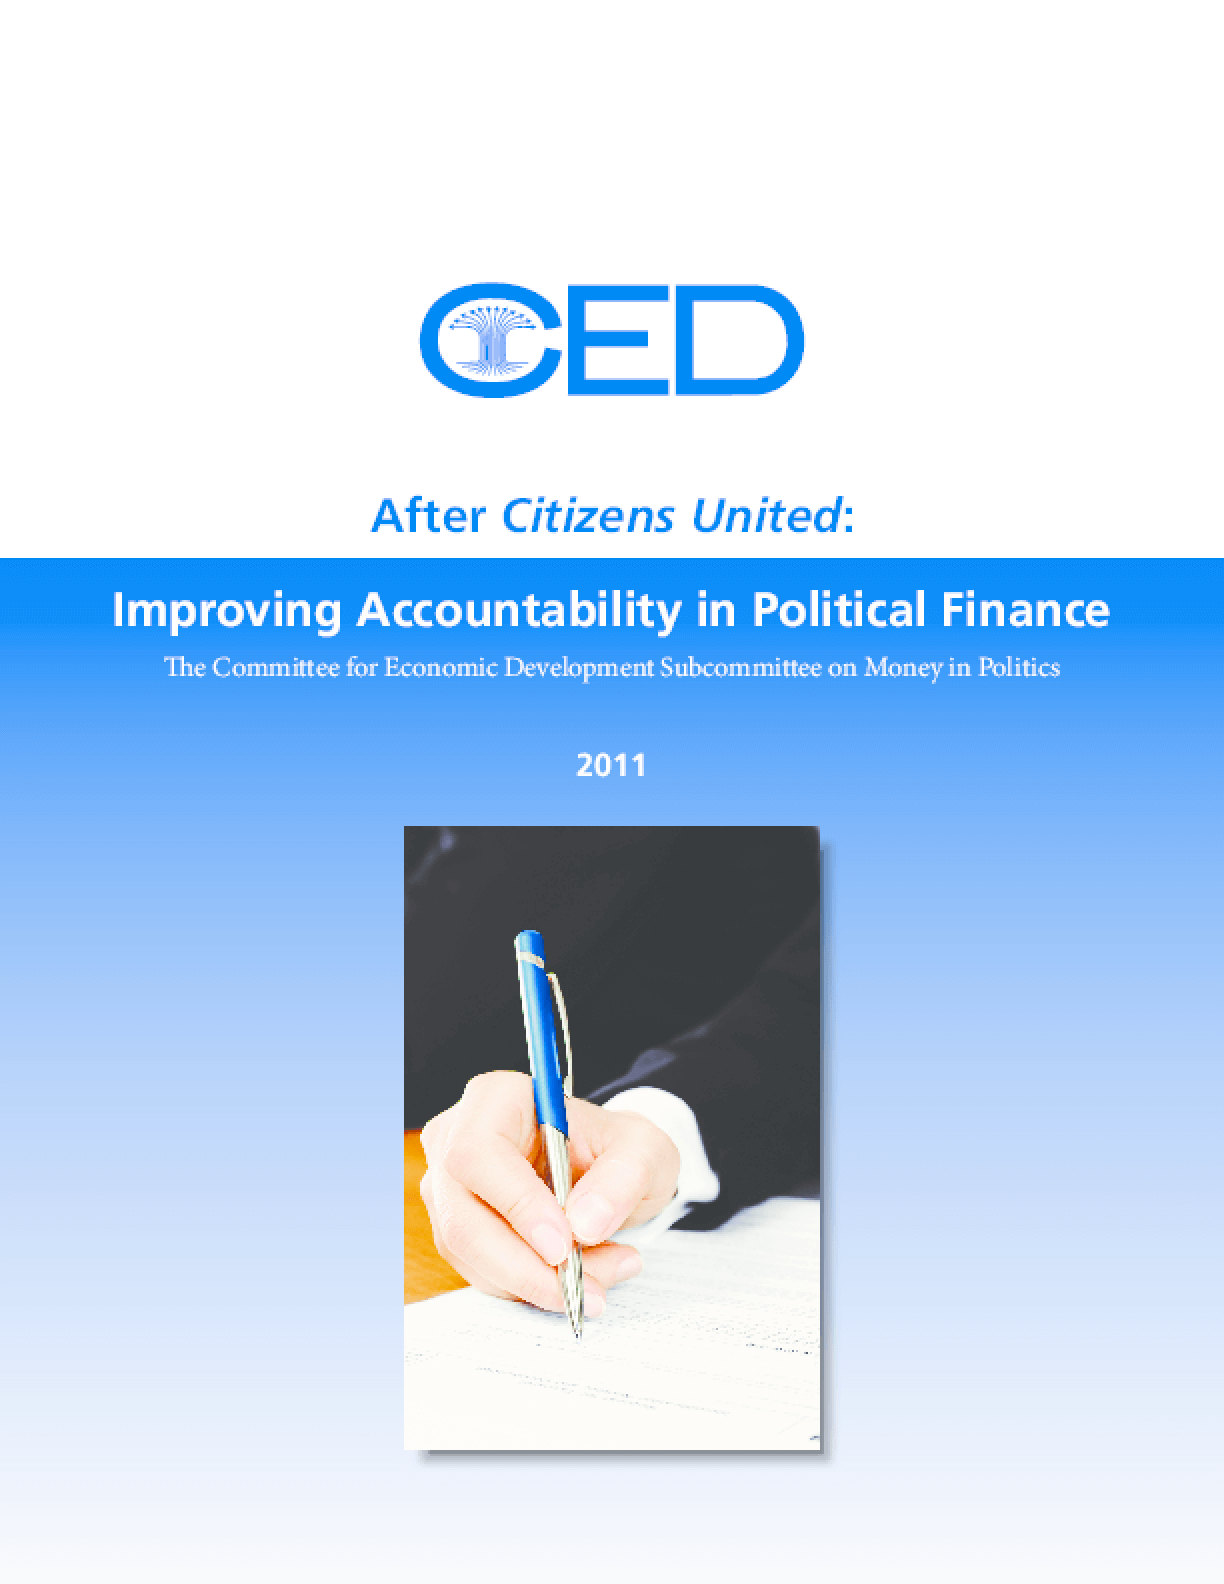 After Citizens United: Improving Accountability in Political Finance